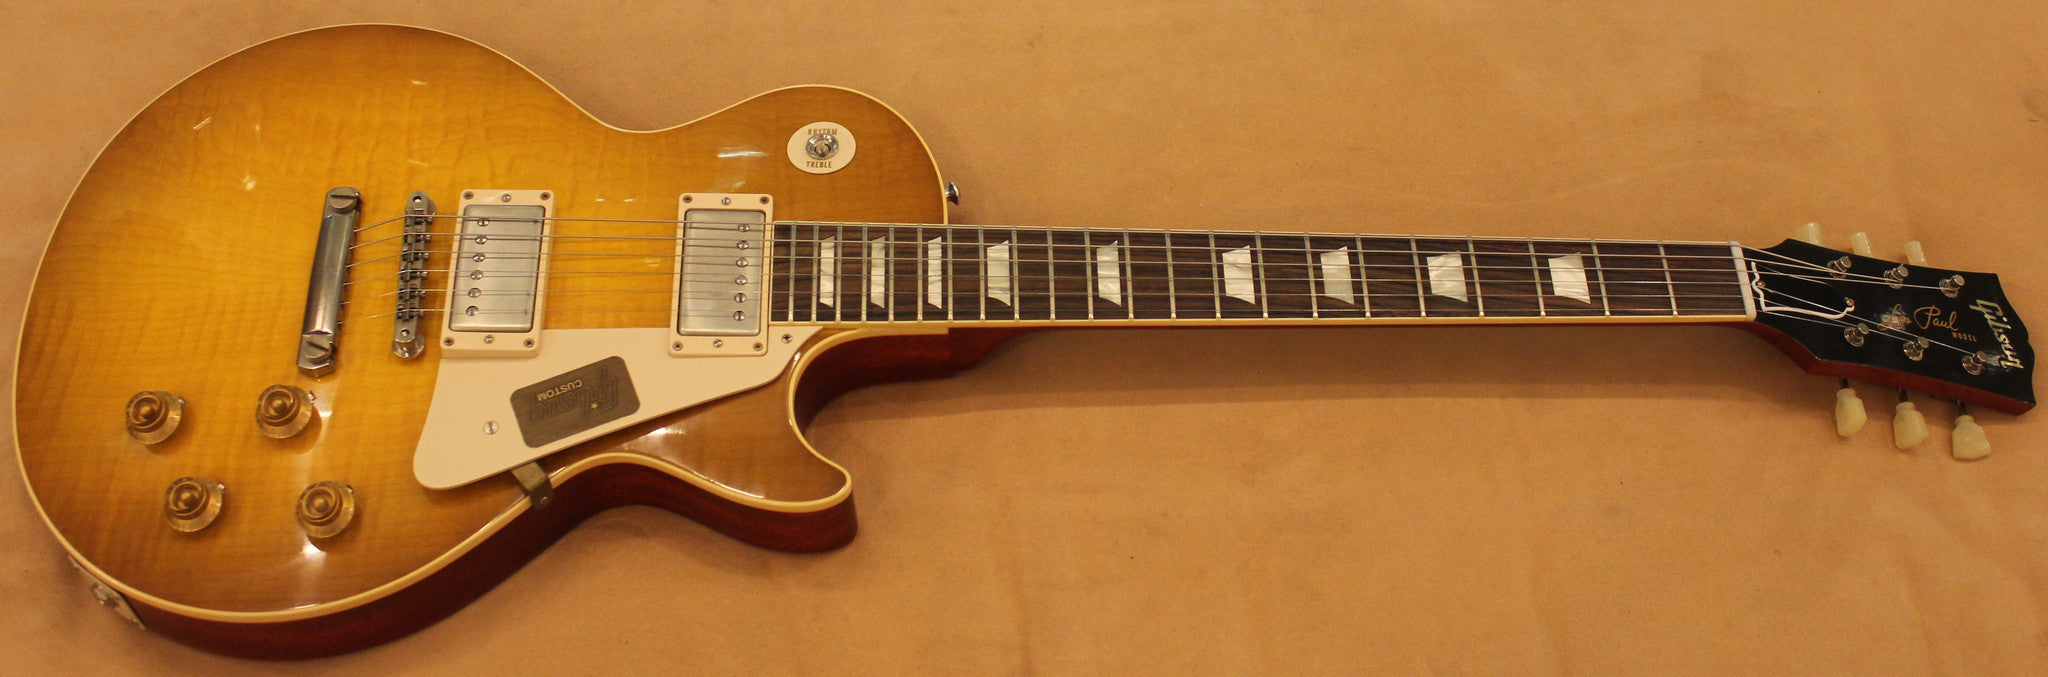 Gibson Les Paul custom shop 1958 reissue Lemonburst Gibson - HIENDGUITAR.COM